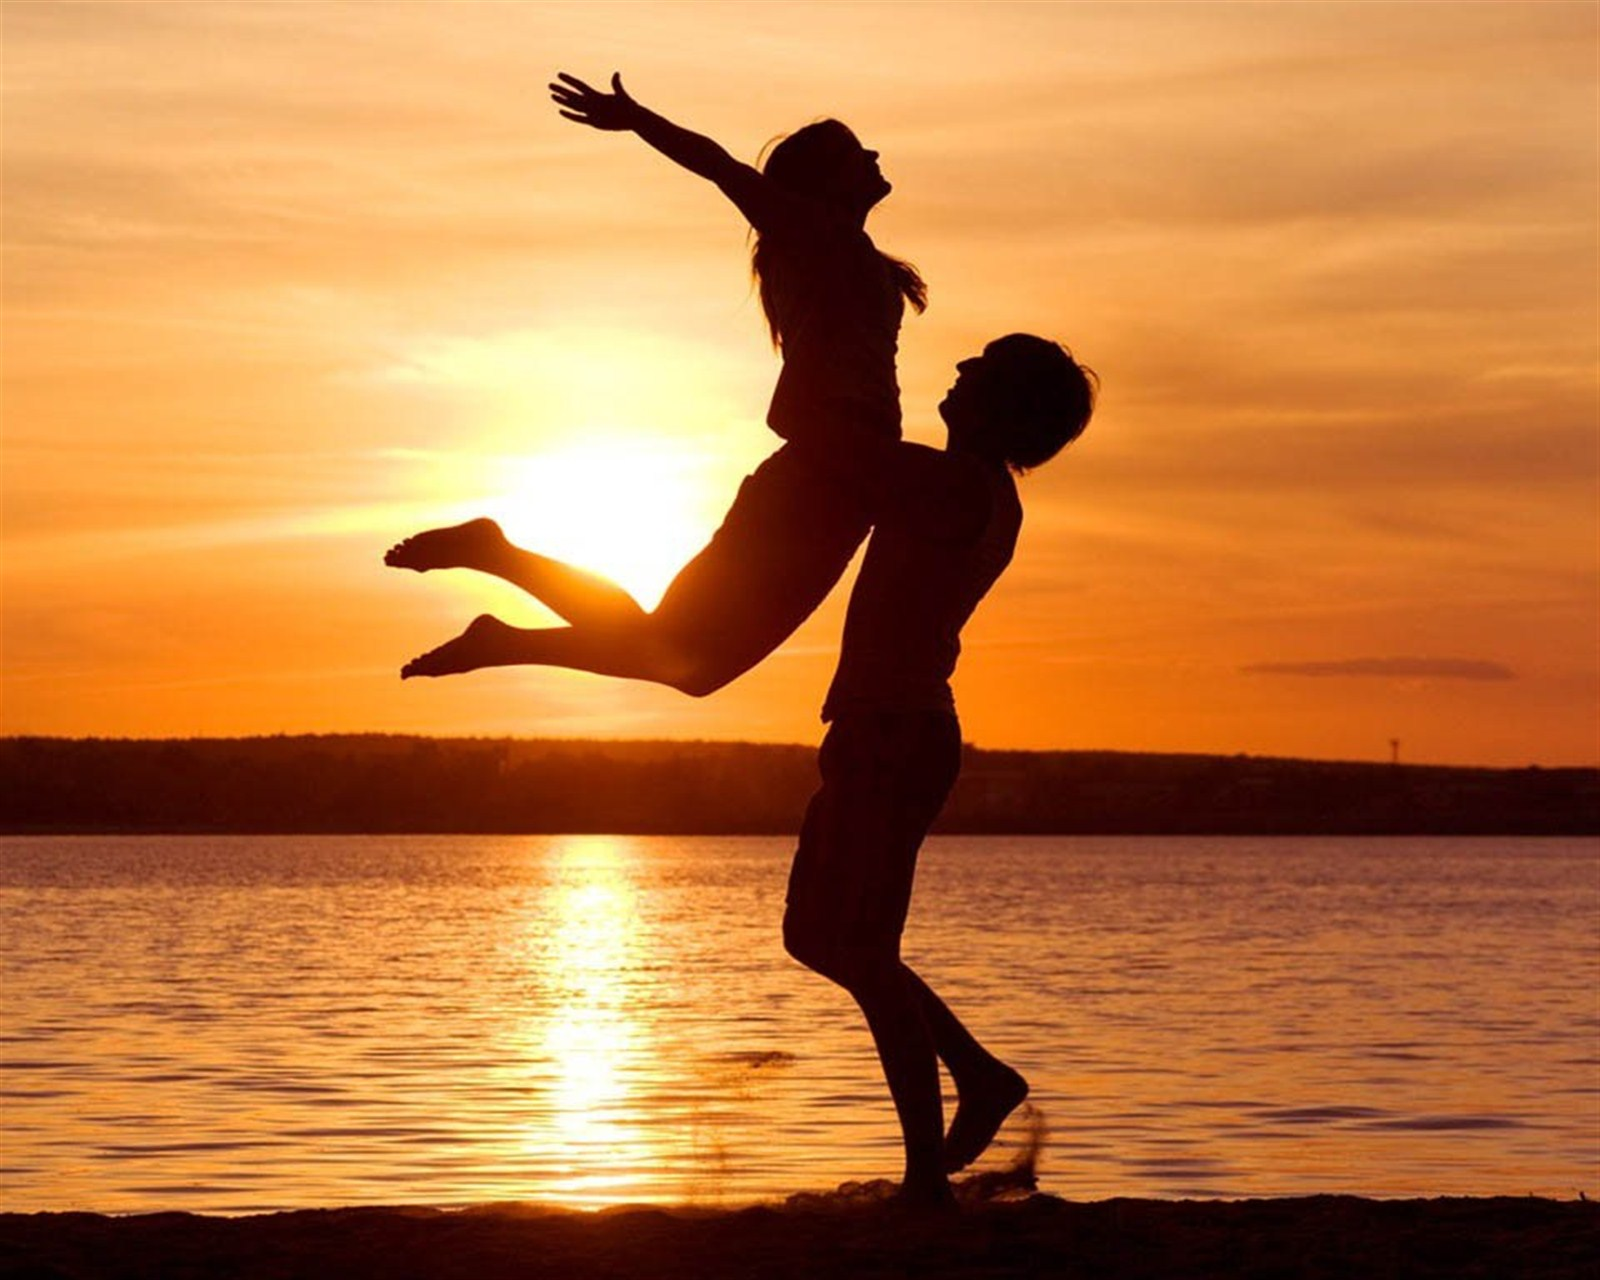 20 HD WALPAPER ROMANTIS DENGAN BACKGROUND SUNSET